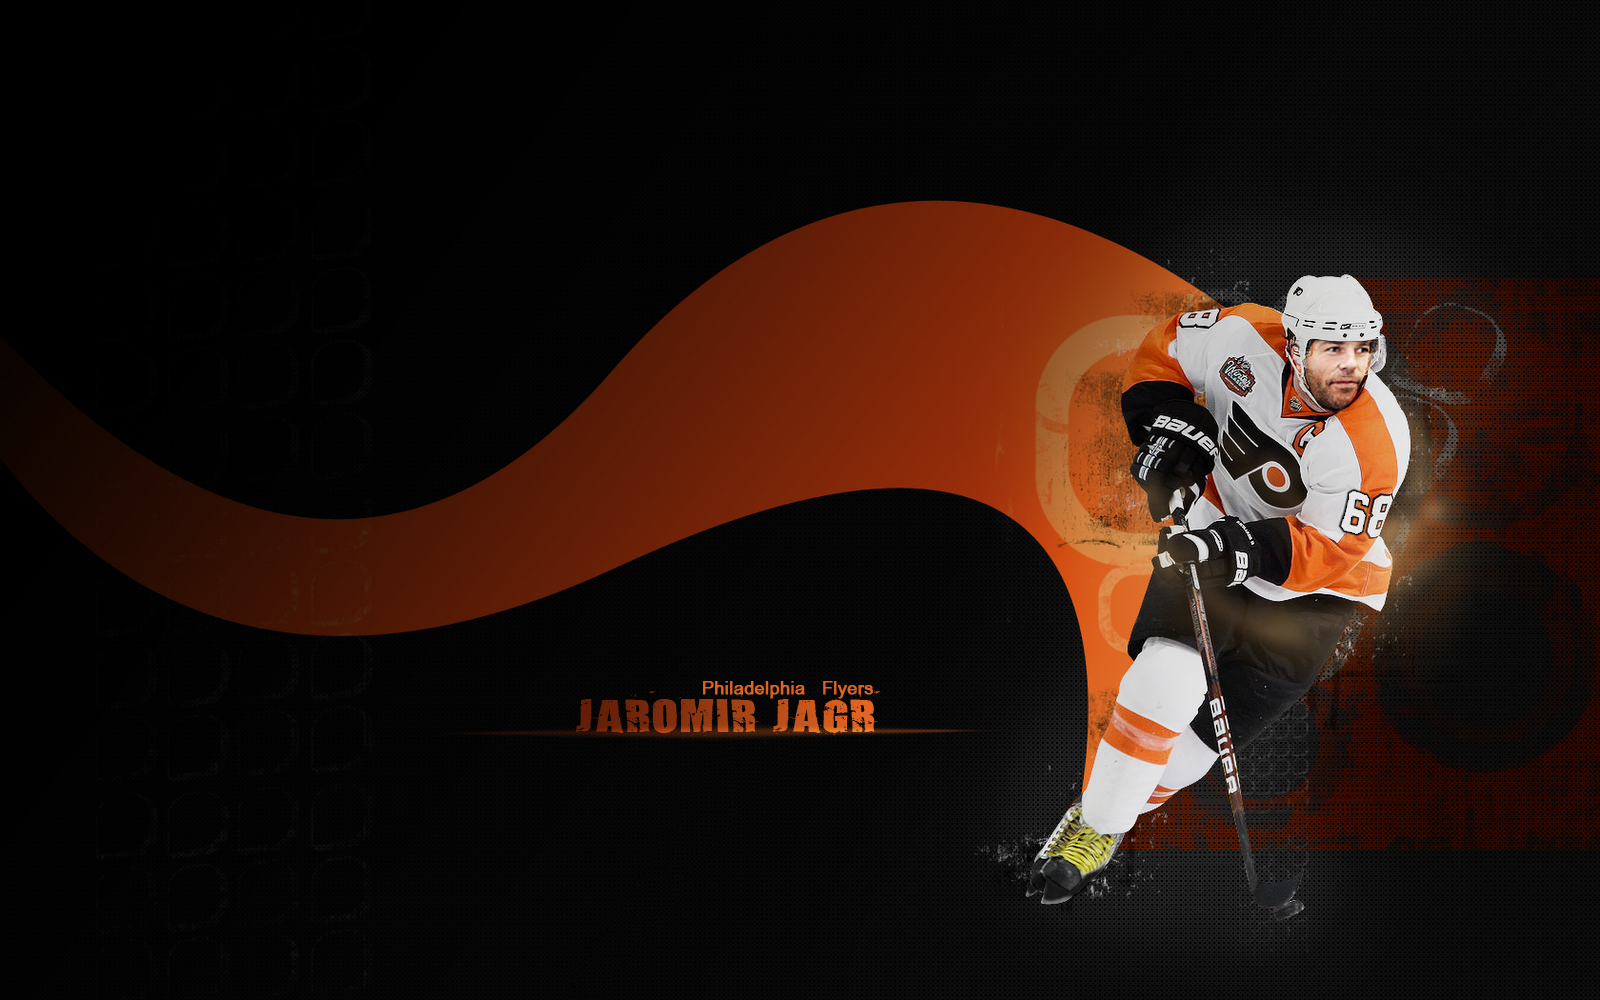 com4015philadelphia flyers desktop wallpaper collection 1600x1000